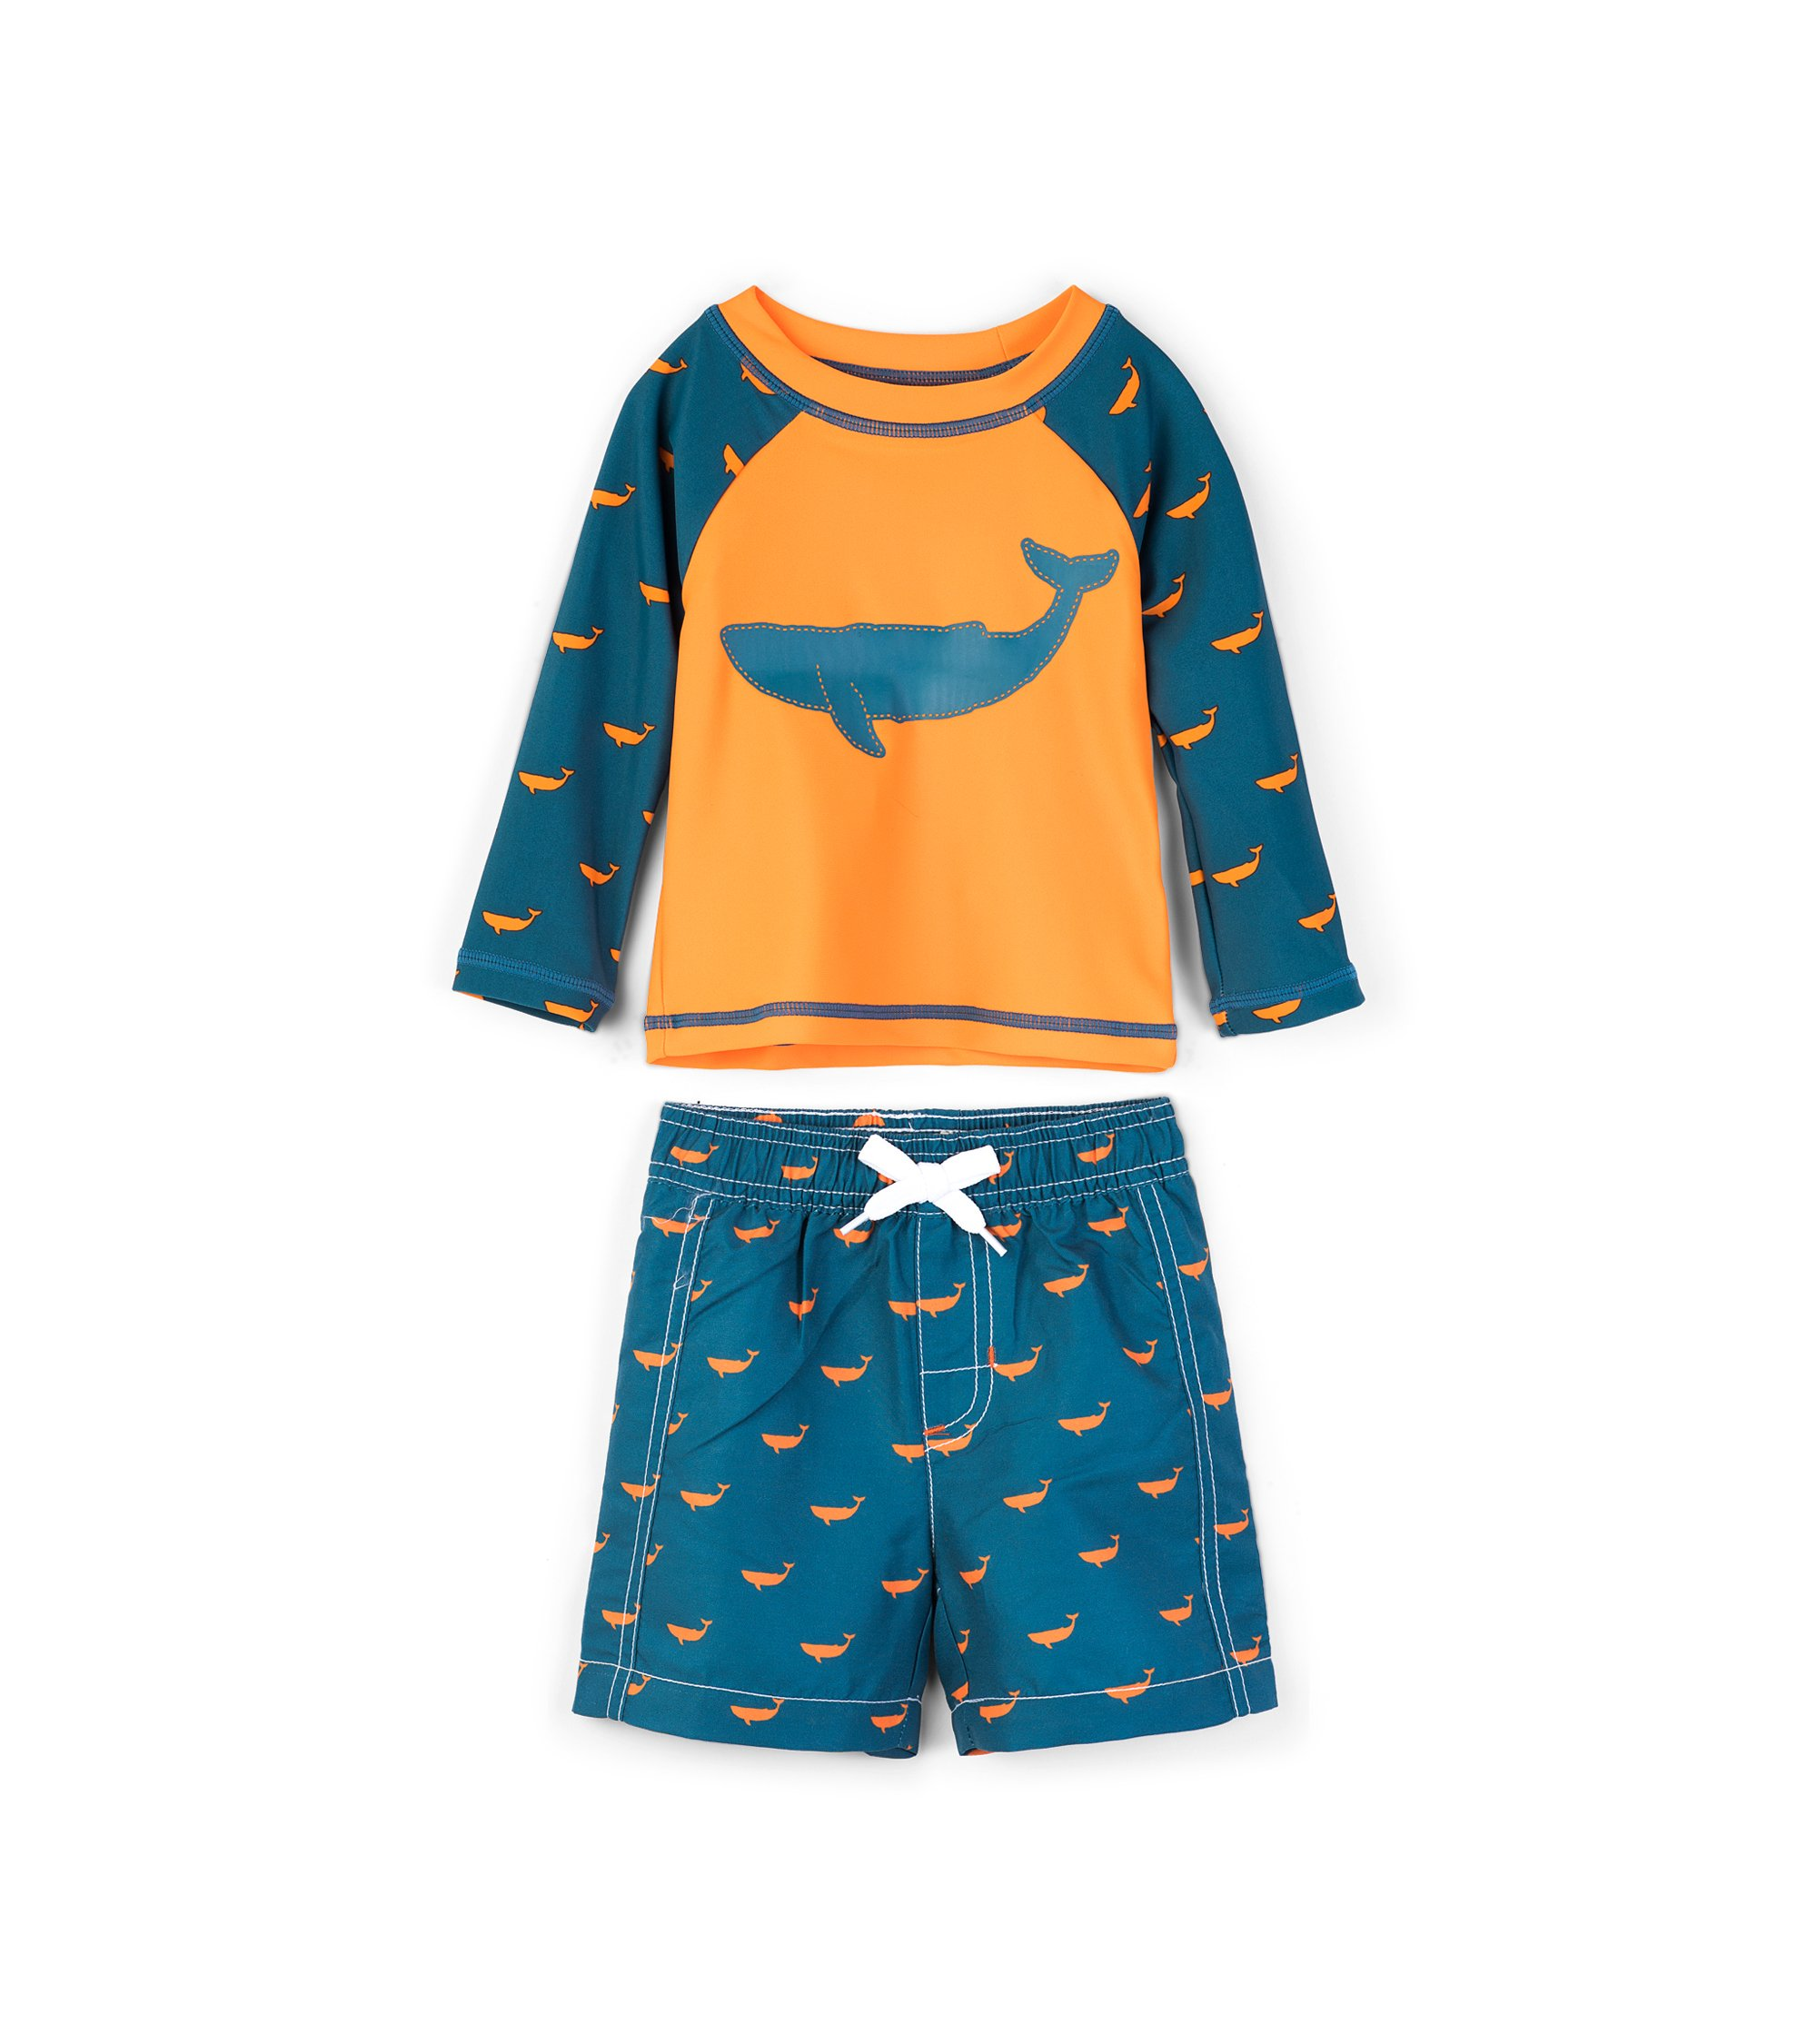 Hatley Boys' Baby Rash Guard Swimsuit Sets, Tiny Whales, 6-9 Months by Hatley